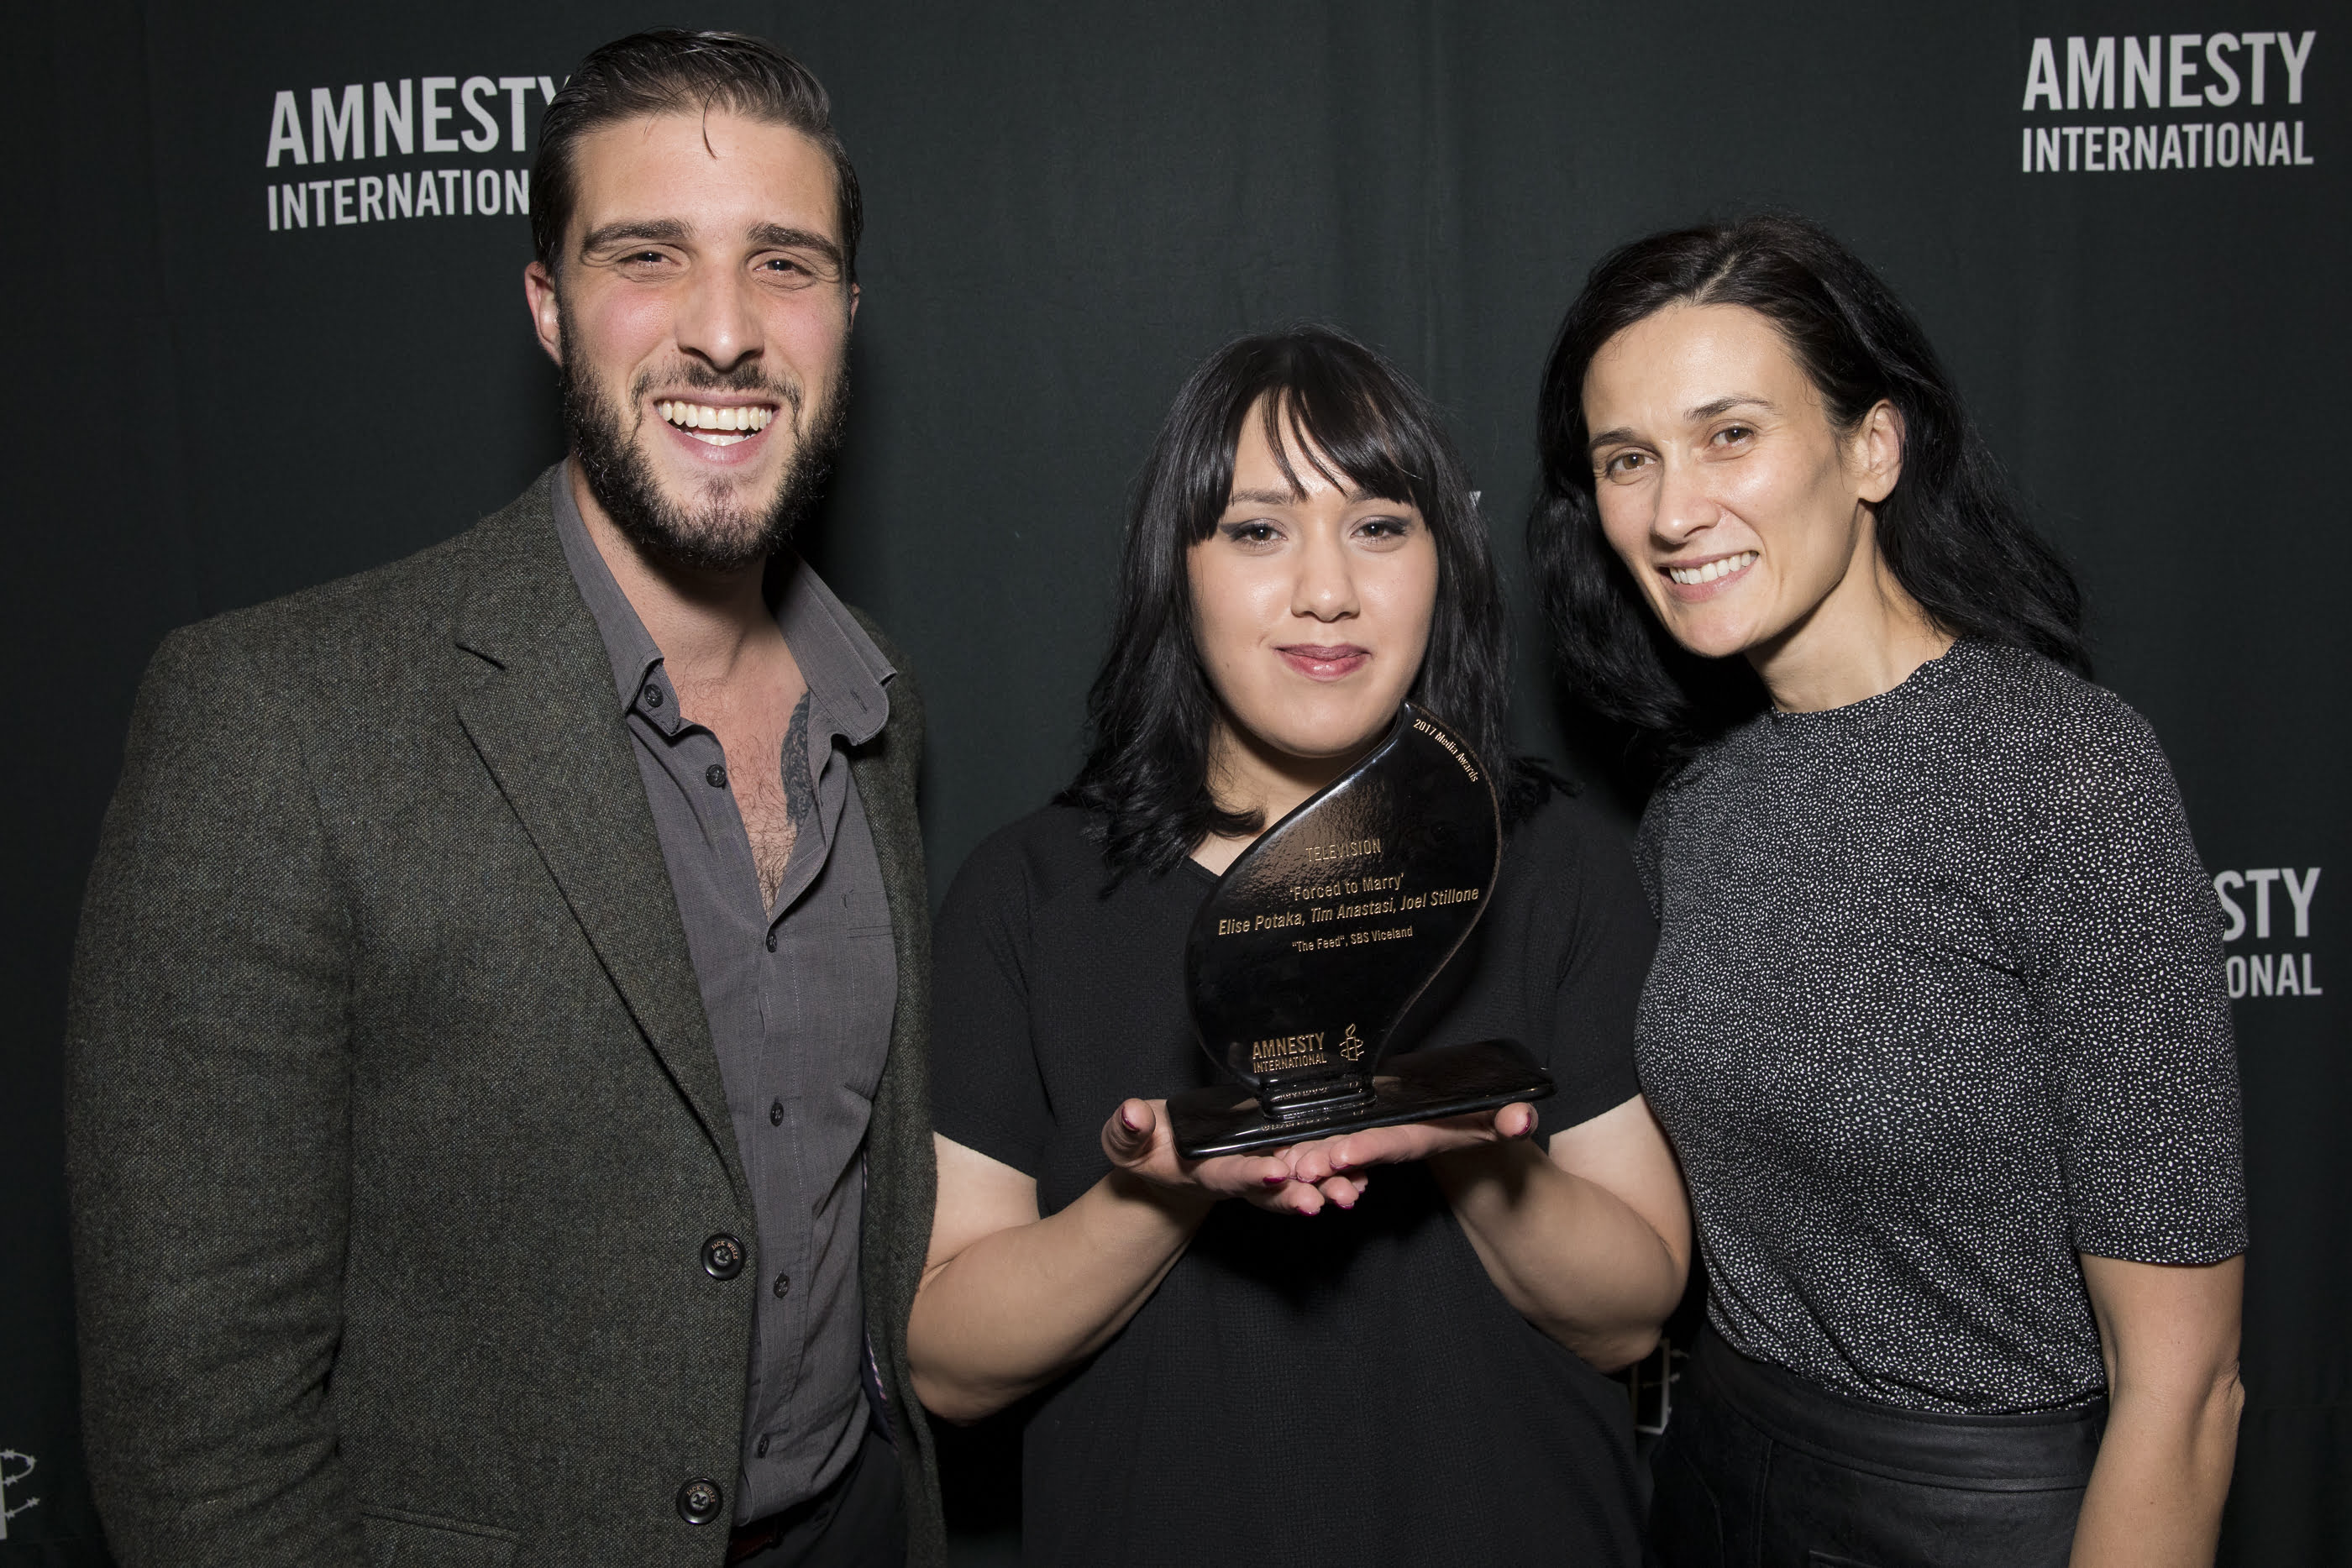 Elise Potaka, Tim Anastasi and Joel Stillone take home the 2017 Amnesty International Media Award for the category of Television. They are joined by Bee [middle] who shared her family's story. © Joseph Mayers Photography